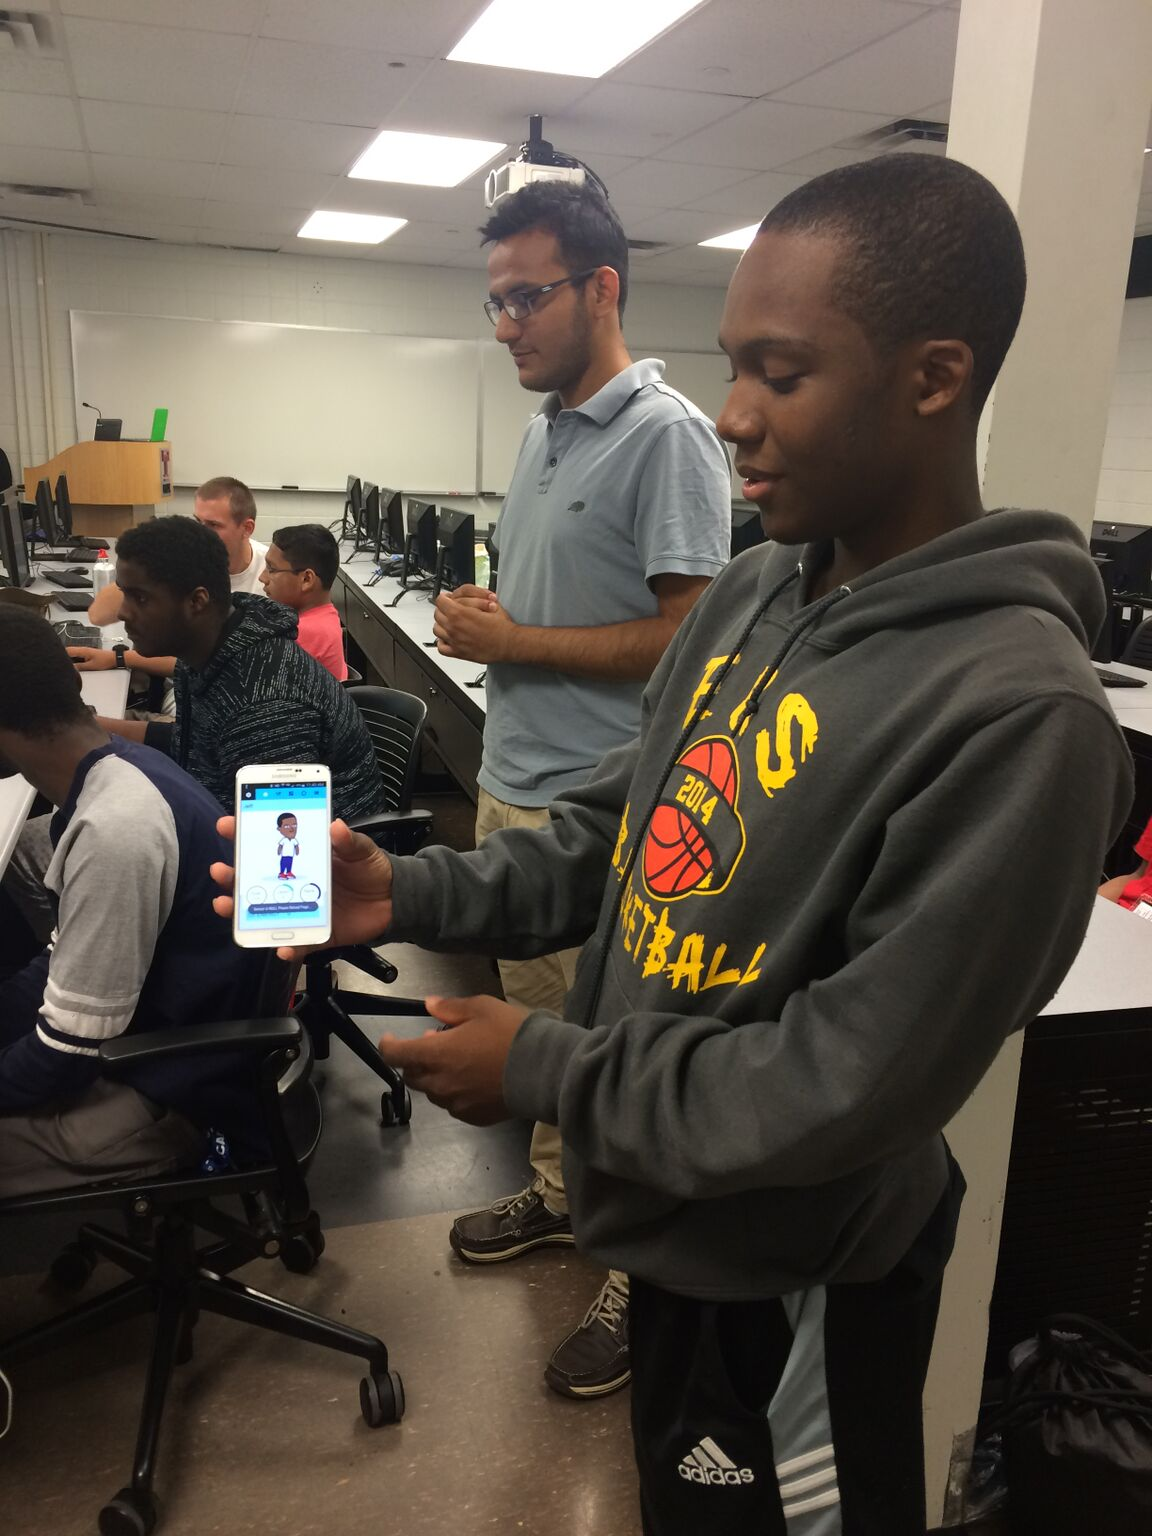 Advanced Coding Interns Work With A Variety of Apps To Help Them Set Goals For Their Projects